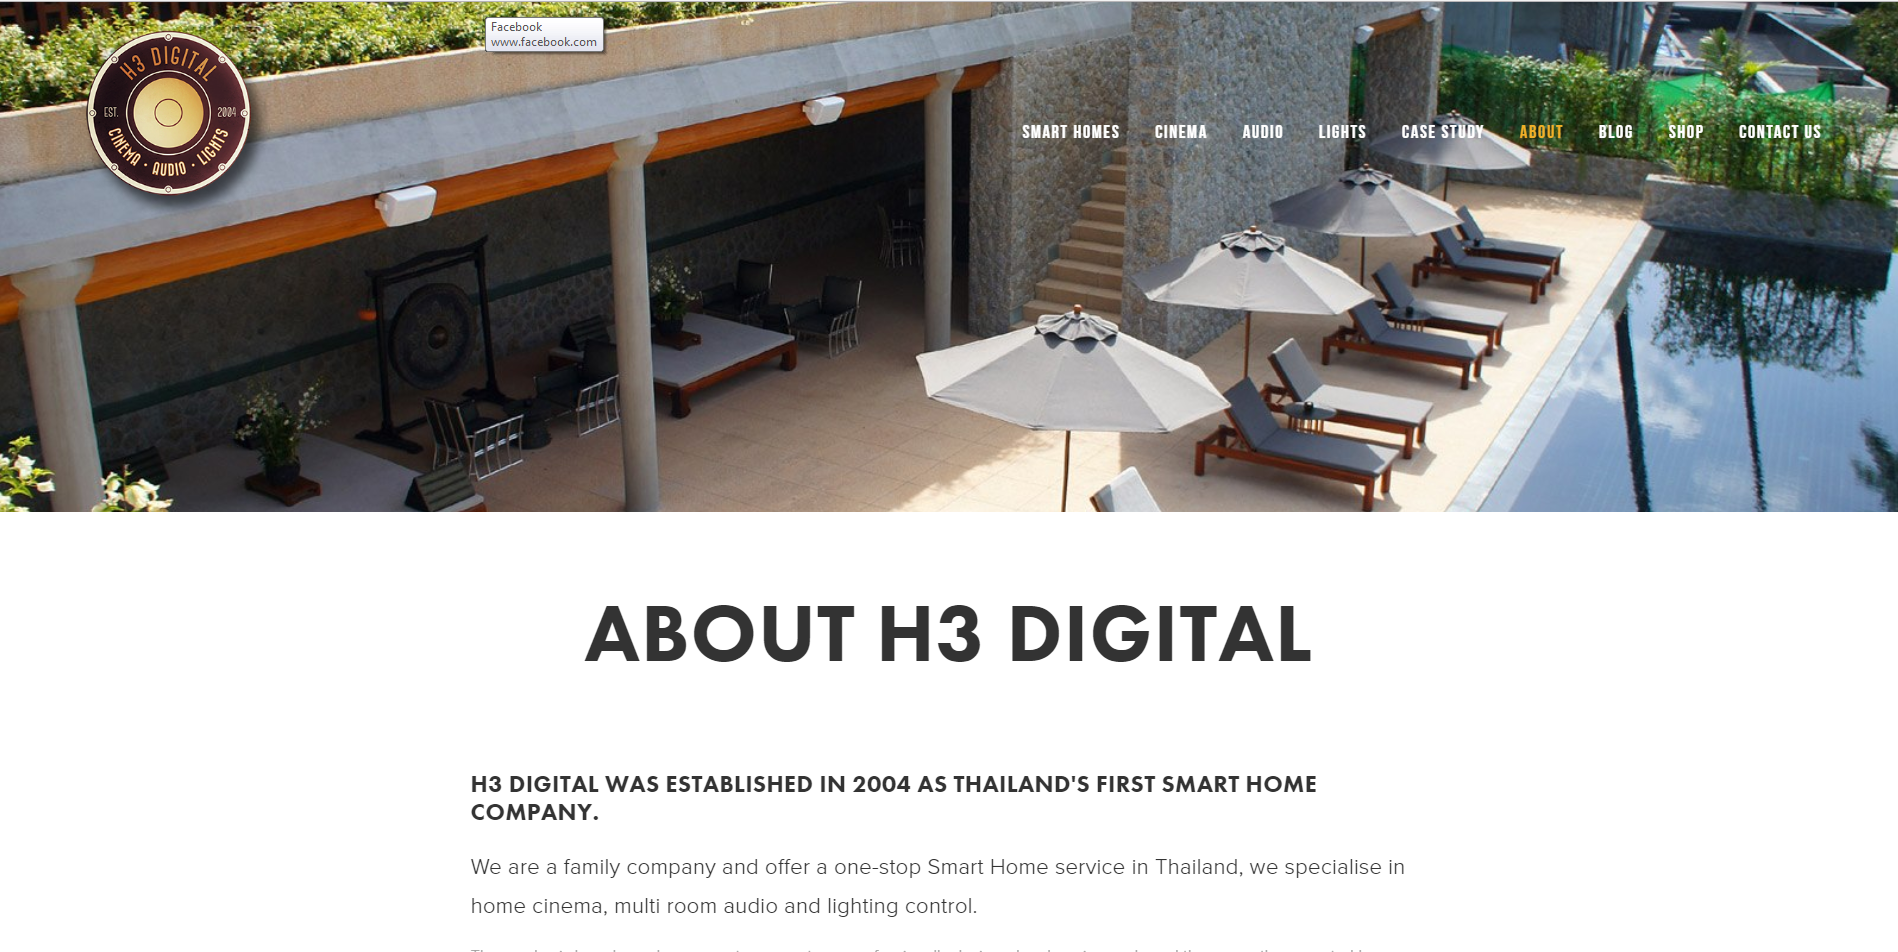 2016 About H3 Digital page